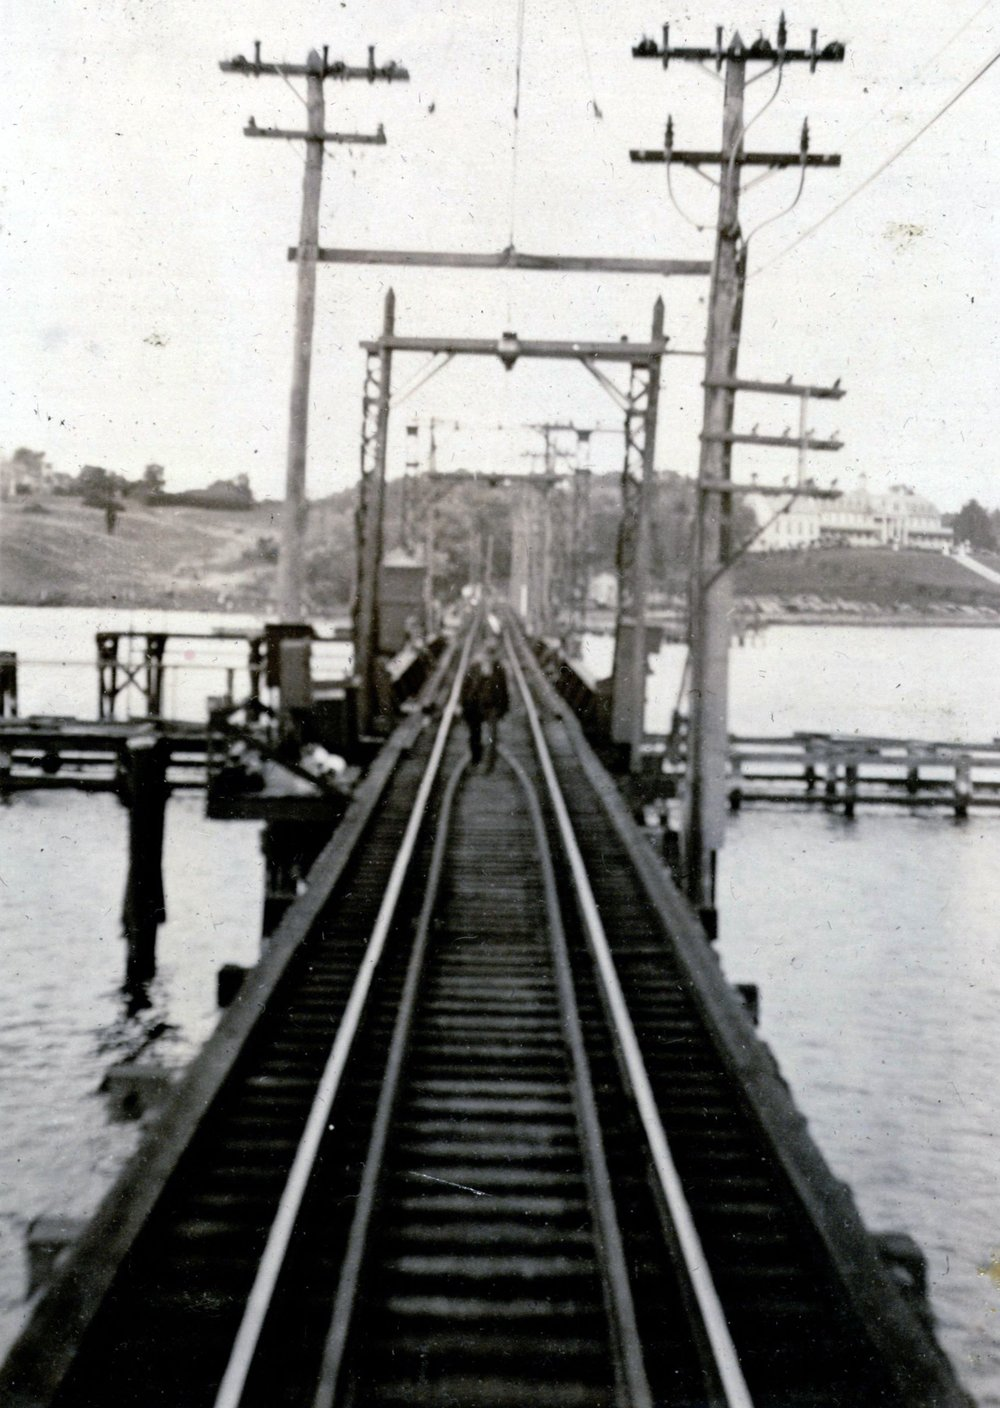 The Severn River Bridge. Looking towards the North Shore, Manresa can be seen to the right. Annapolis, Maryland. Circa 1935. Source: John W. Barriger III National Railroad Library.